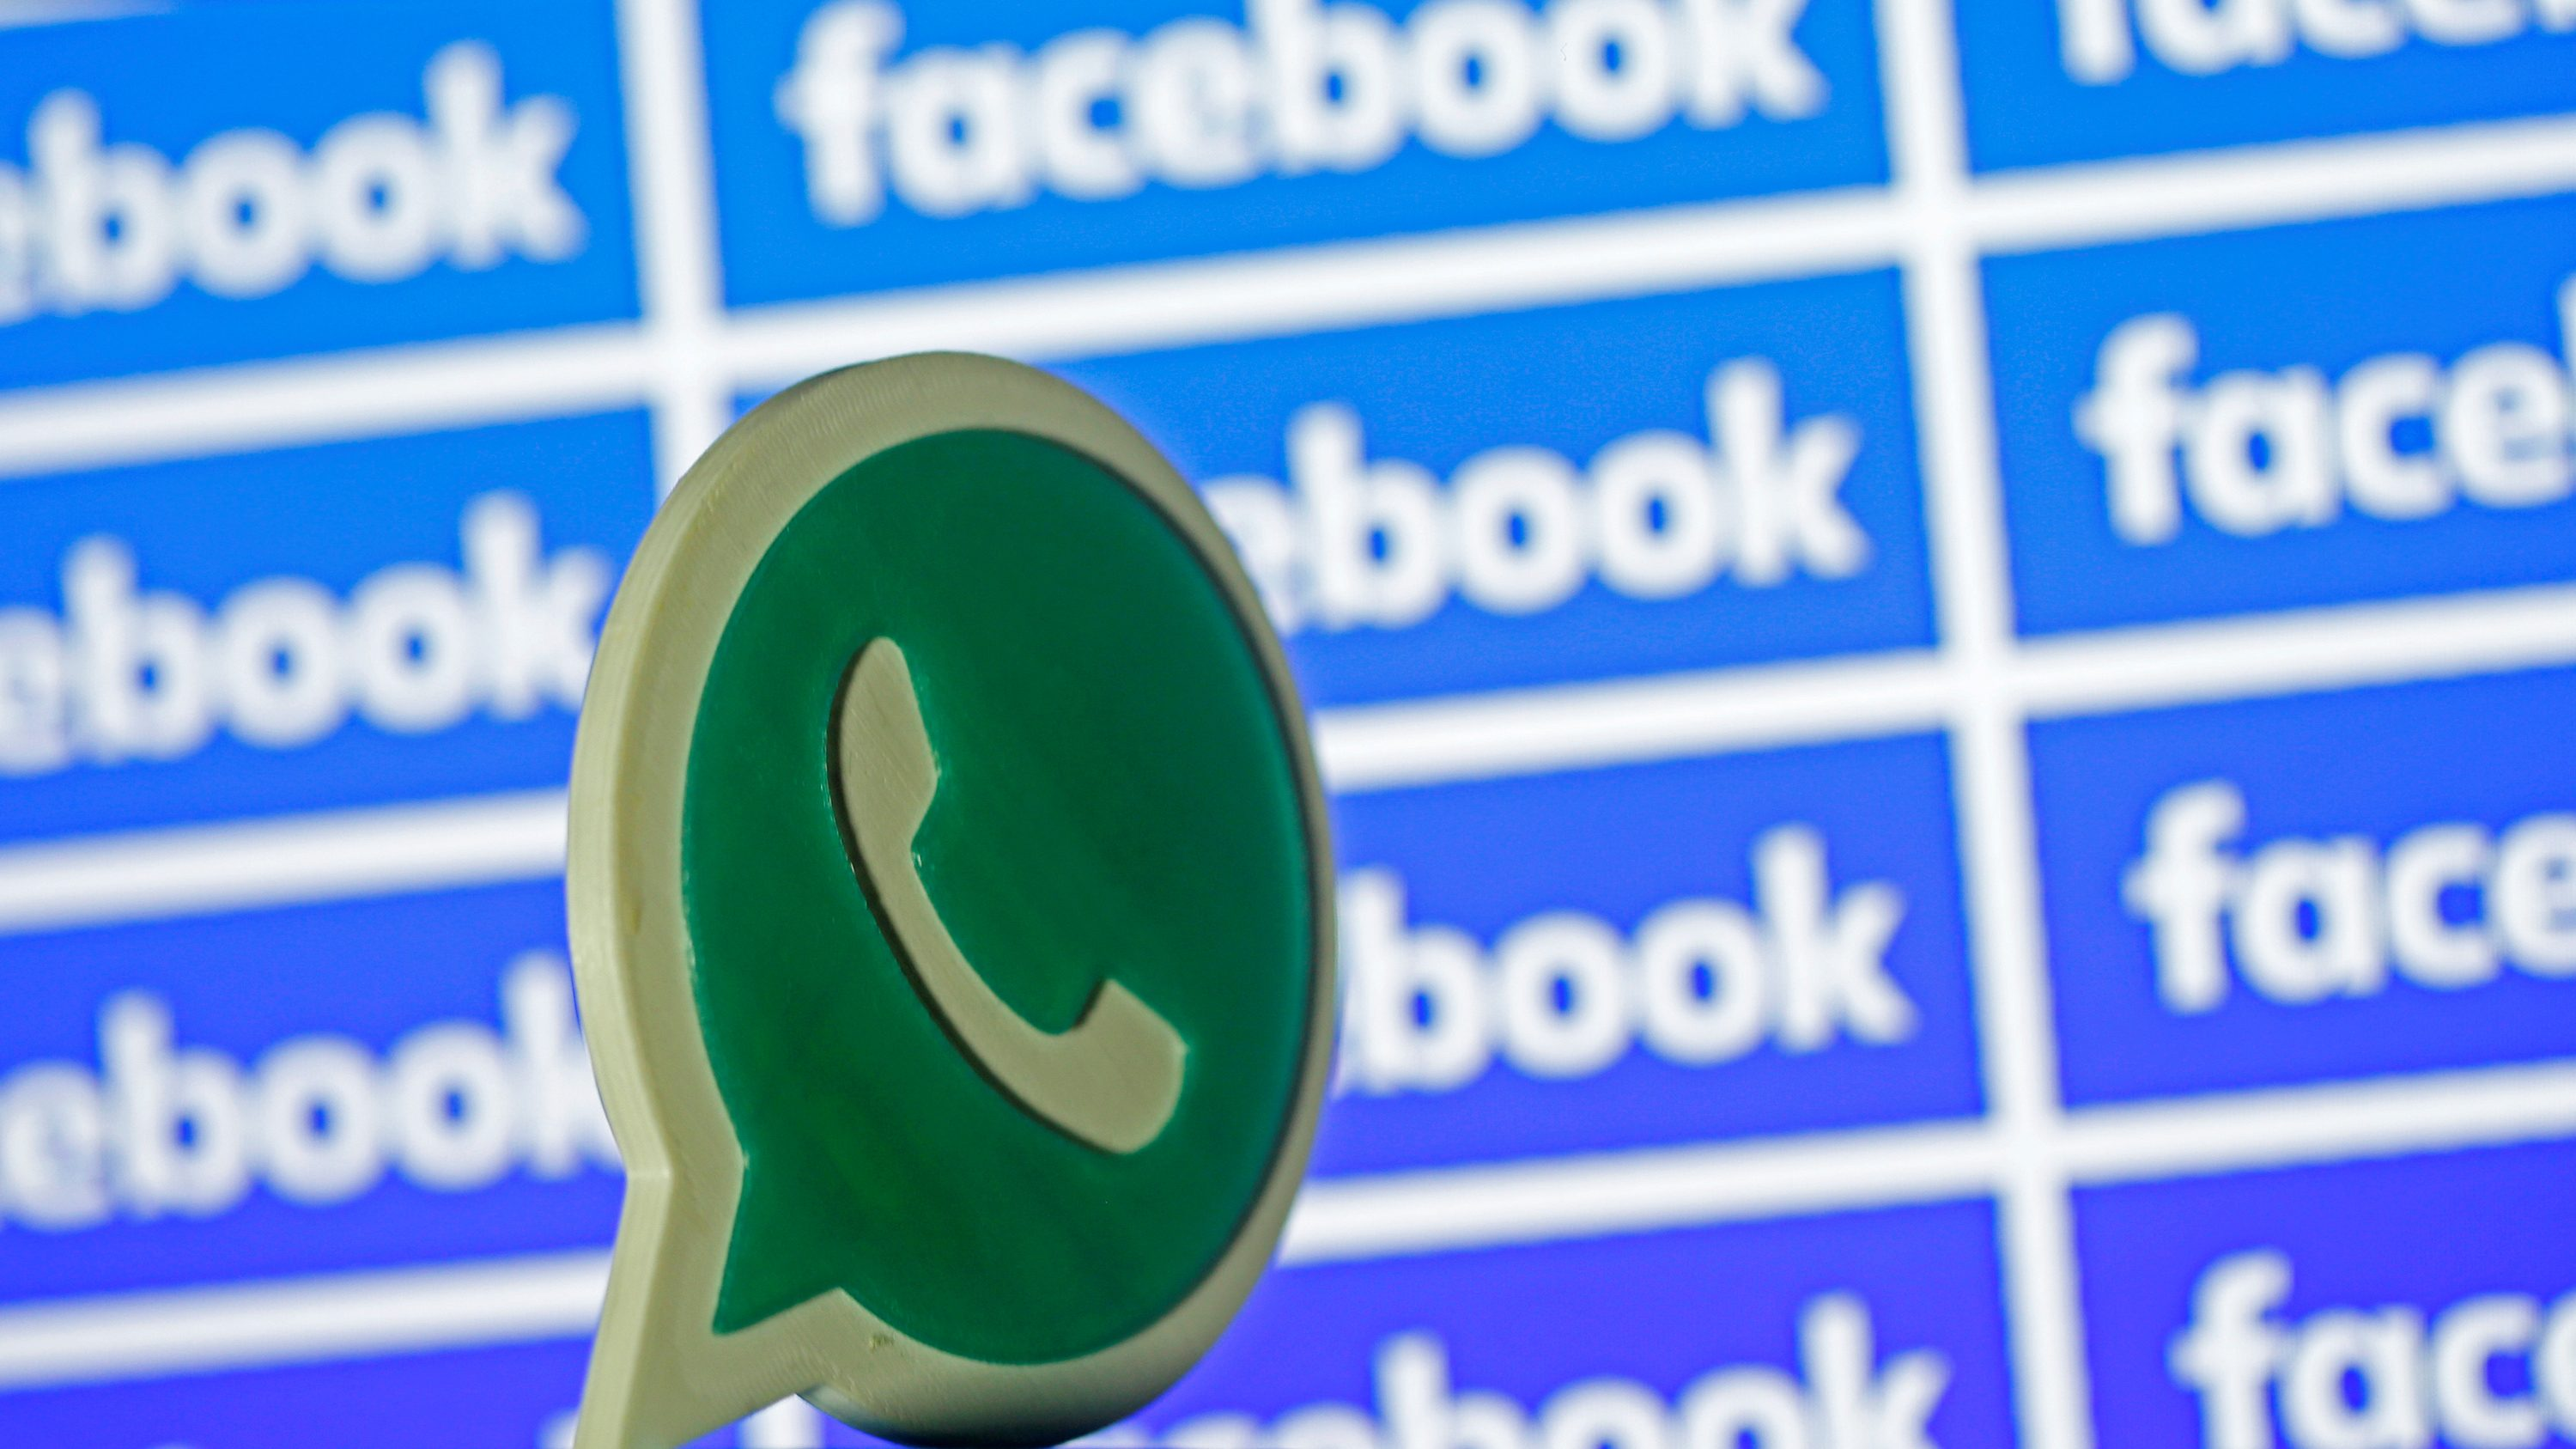 A 3D printed Whatsapp  logo is seen in front of a displayed Facebook logo in this illustration taken April 28, 2016.